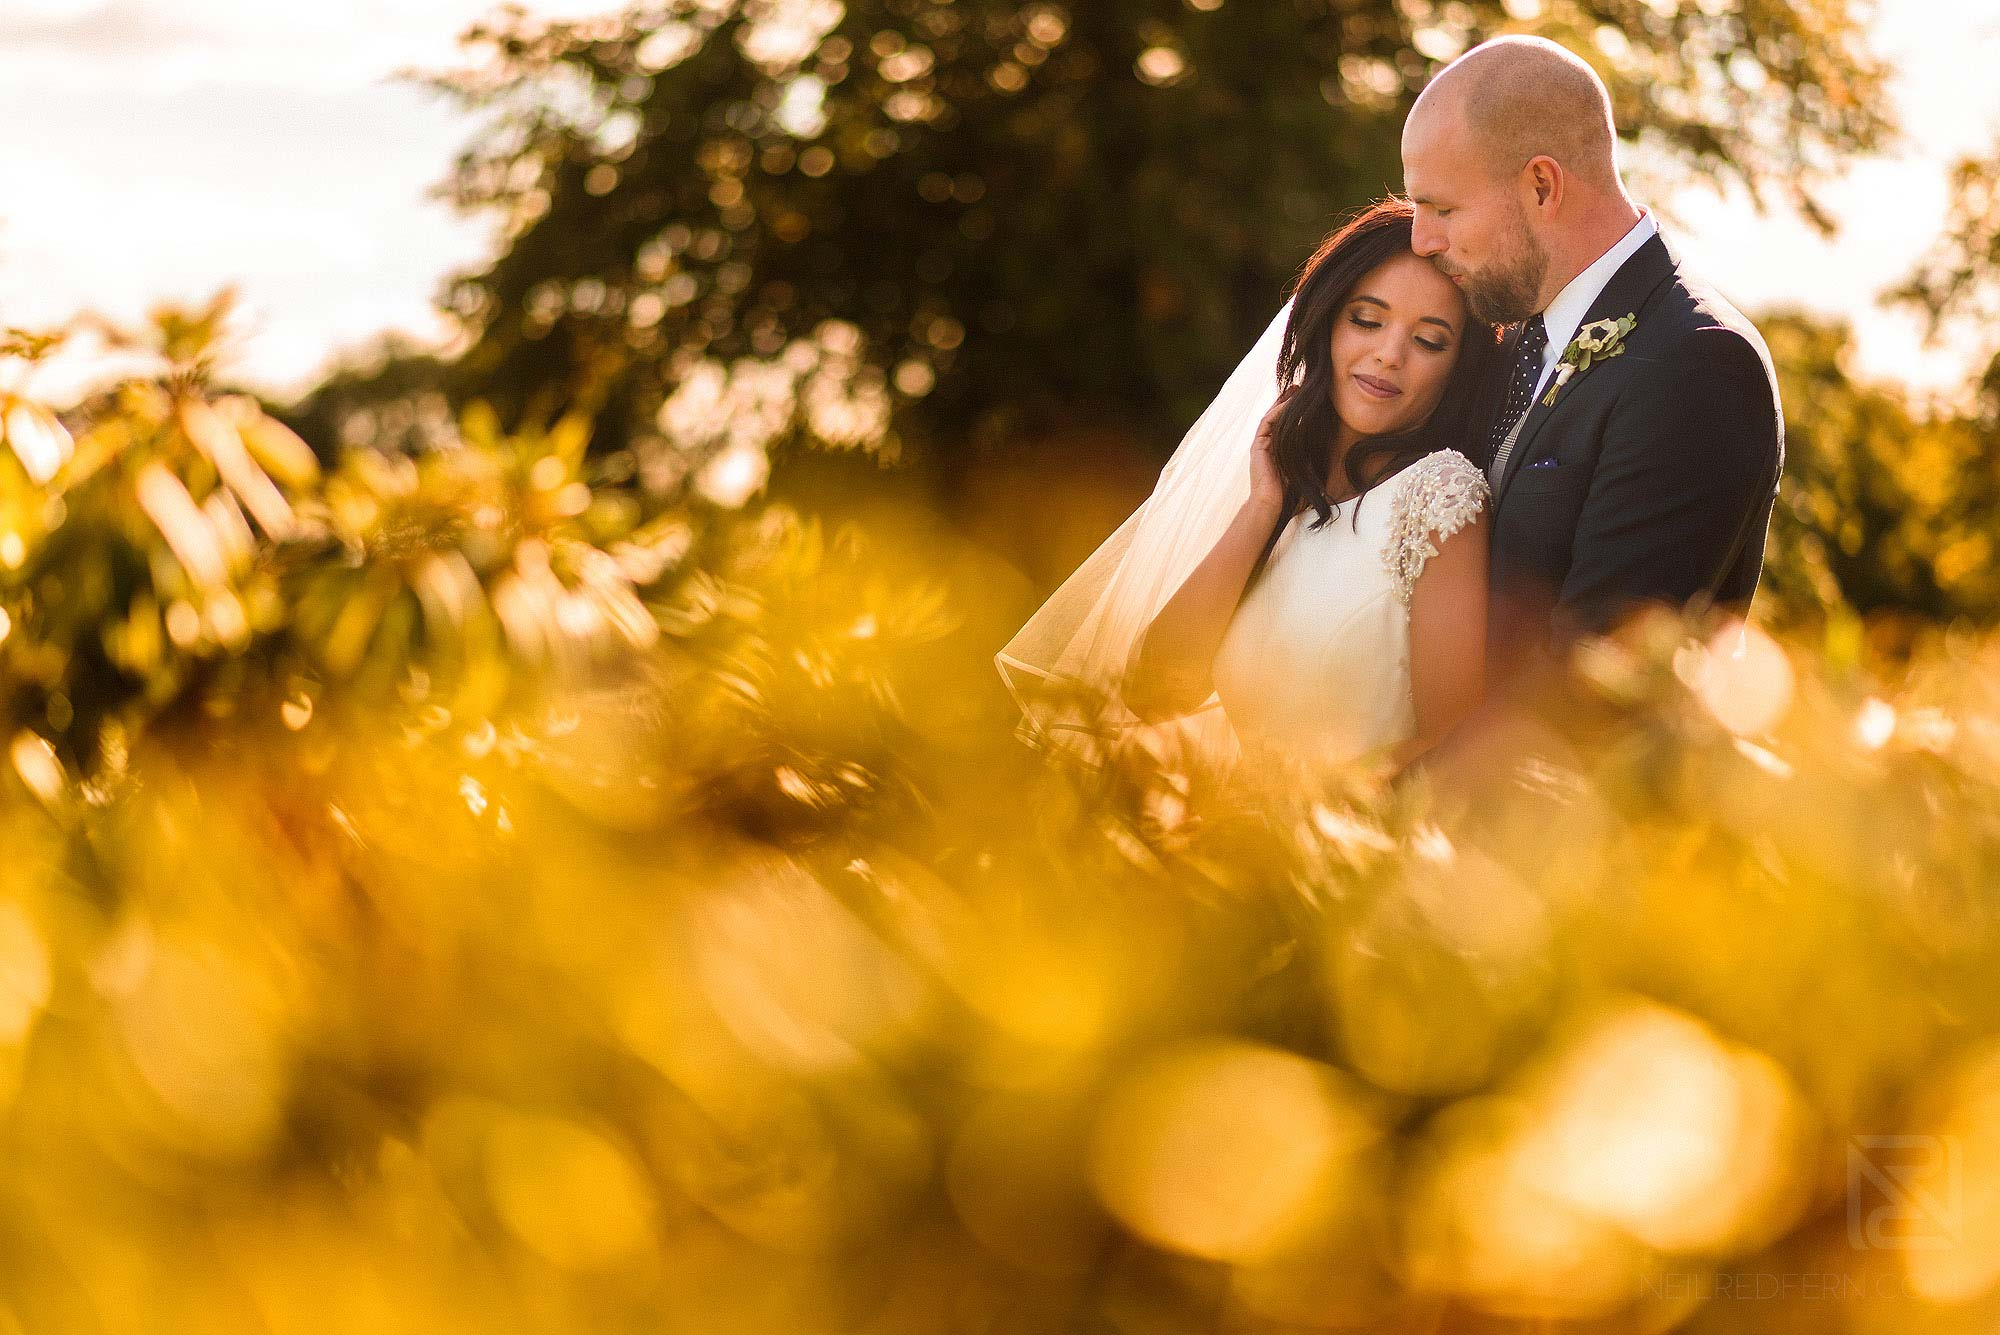 beautiful moment between bride and groom at Merrydale Manor in Cheshire